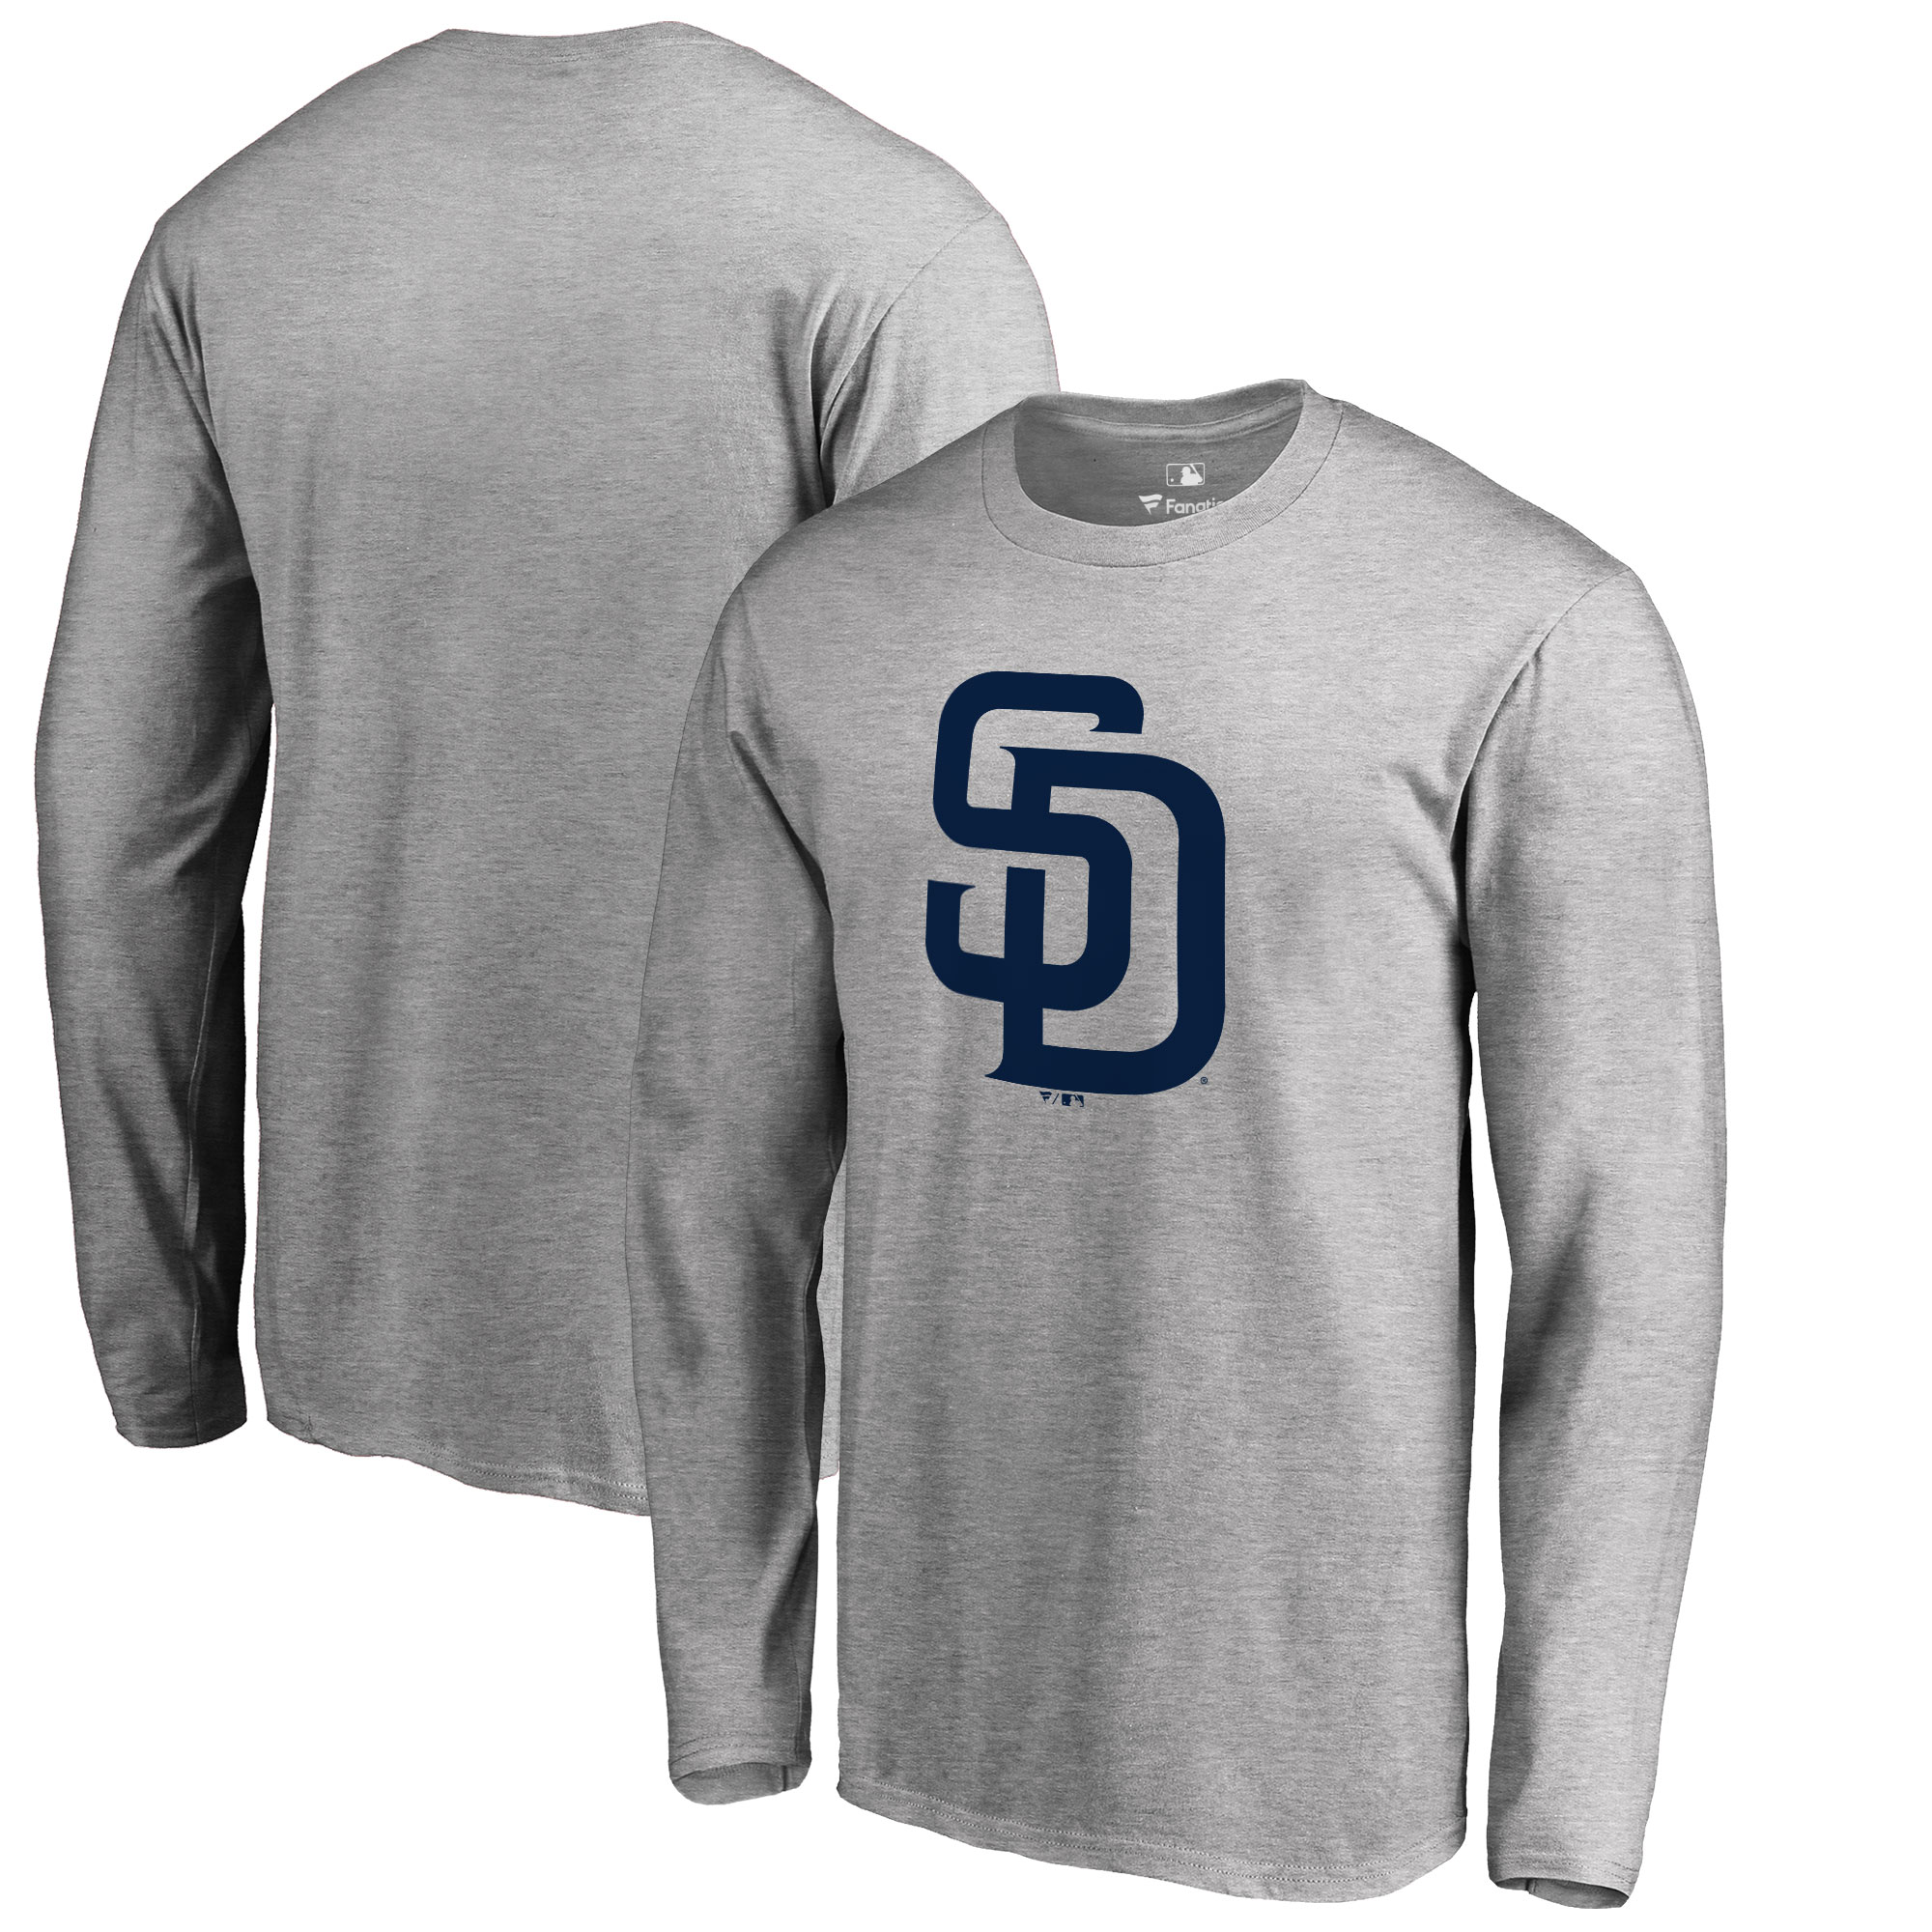 San Diego Padres Big & Tall Primary Team Logo Long Sleeve T-Shirt - Ash